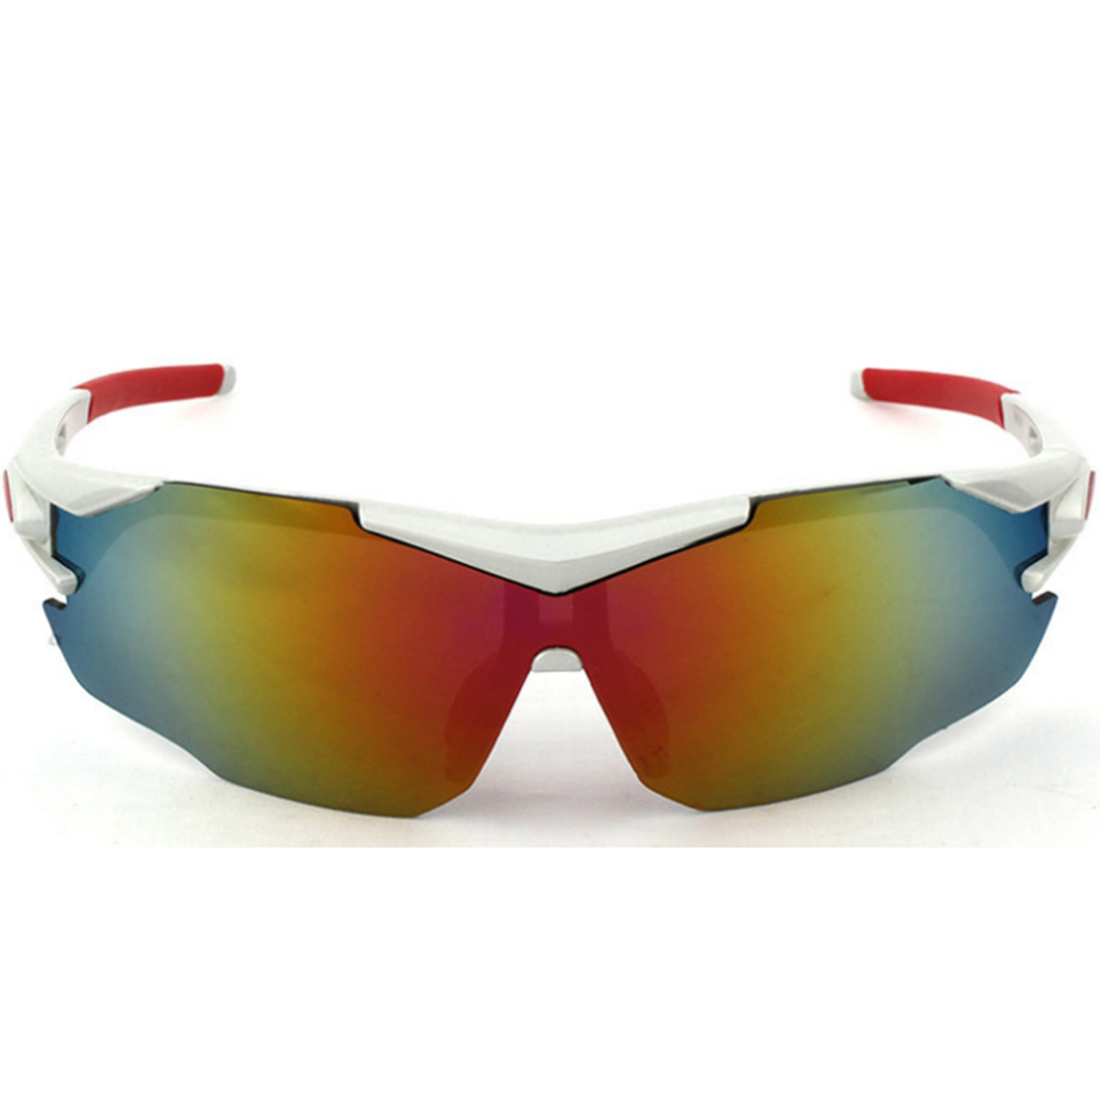 Male Outdoor Activities Goggle Skiing Cycling Wind Sunglasses(Red Mercury) - Matte Silvery White Frame